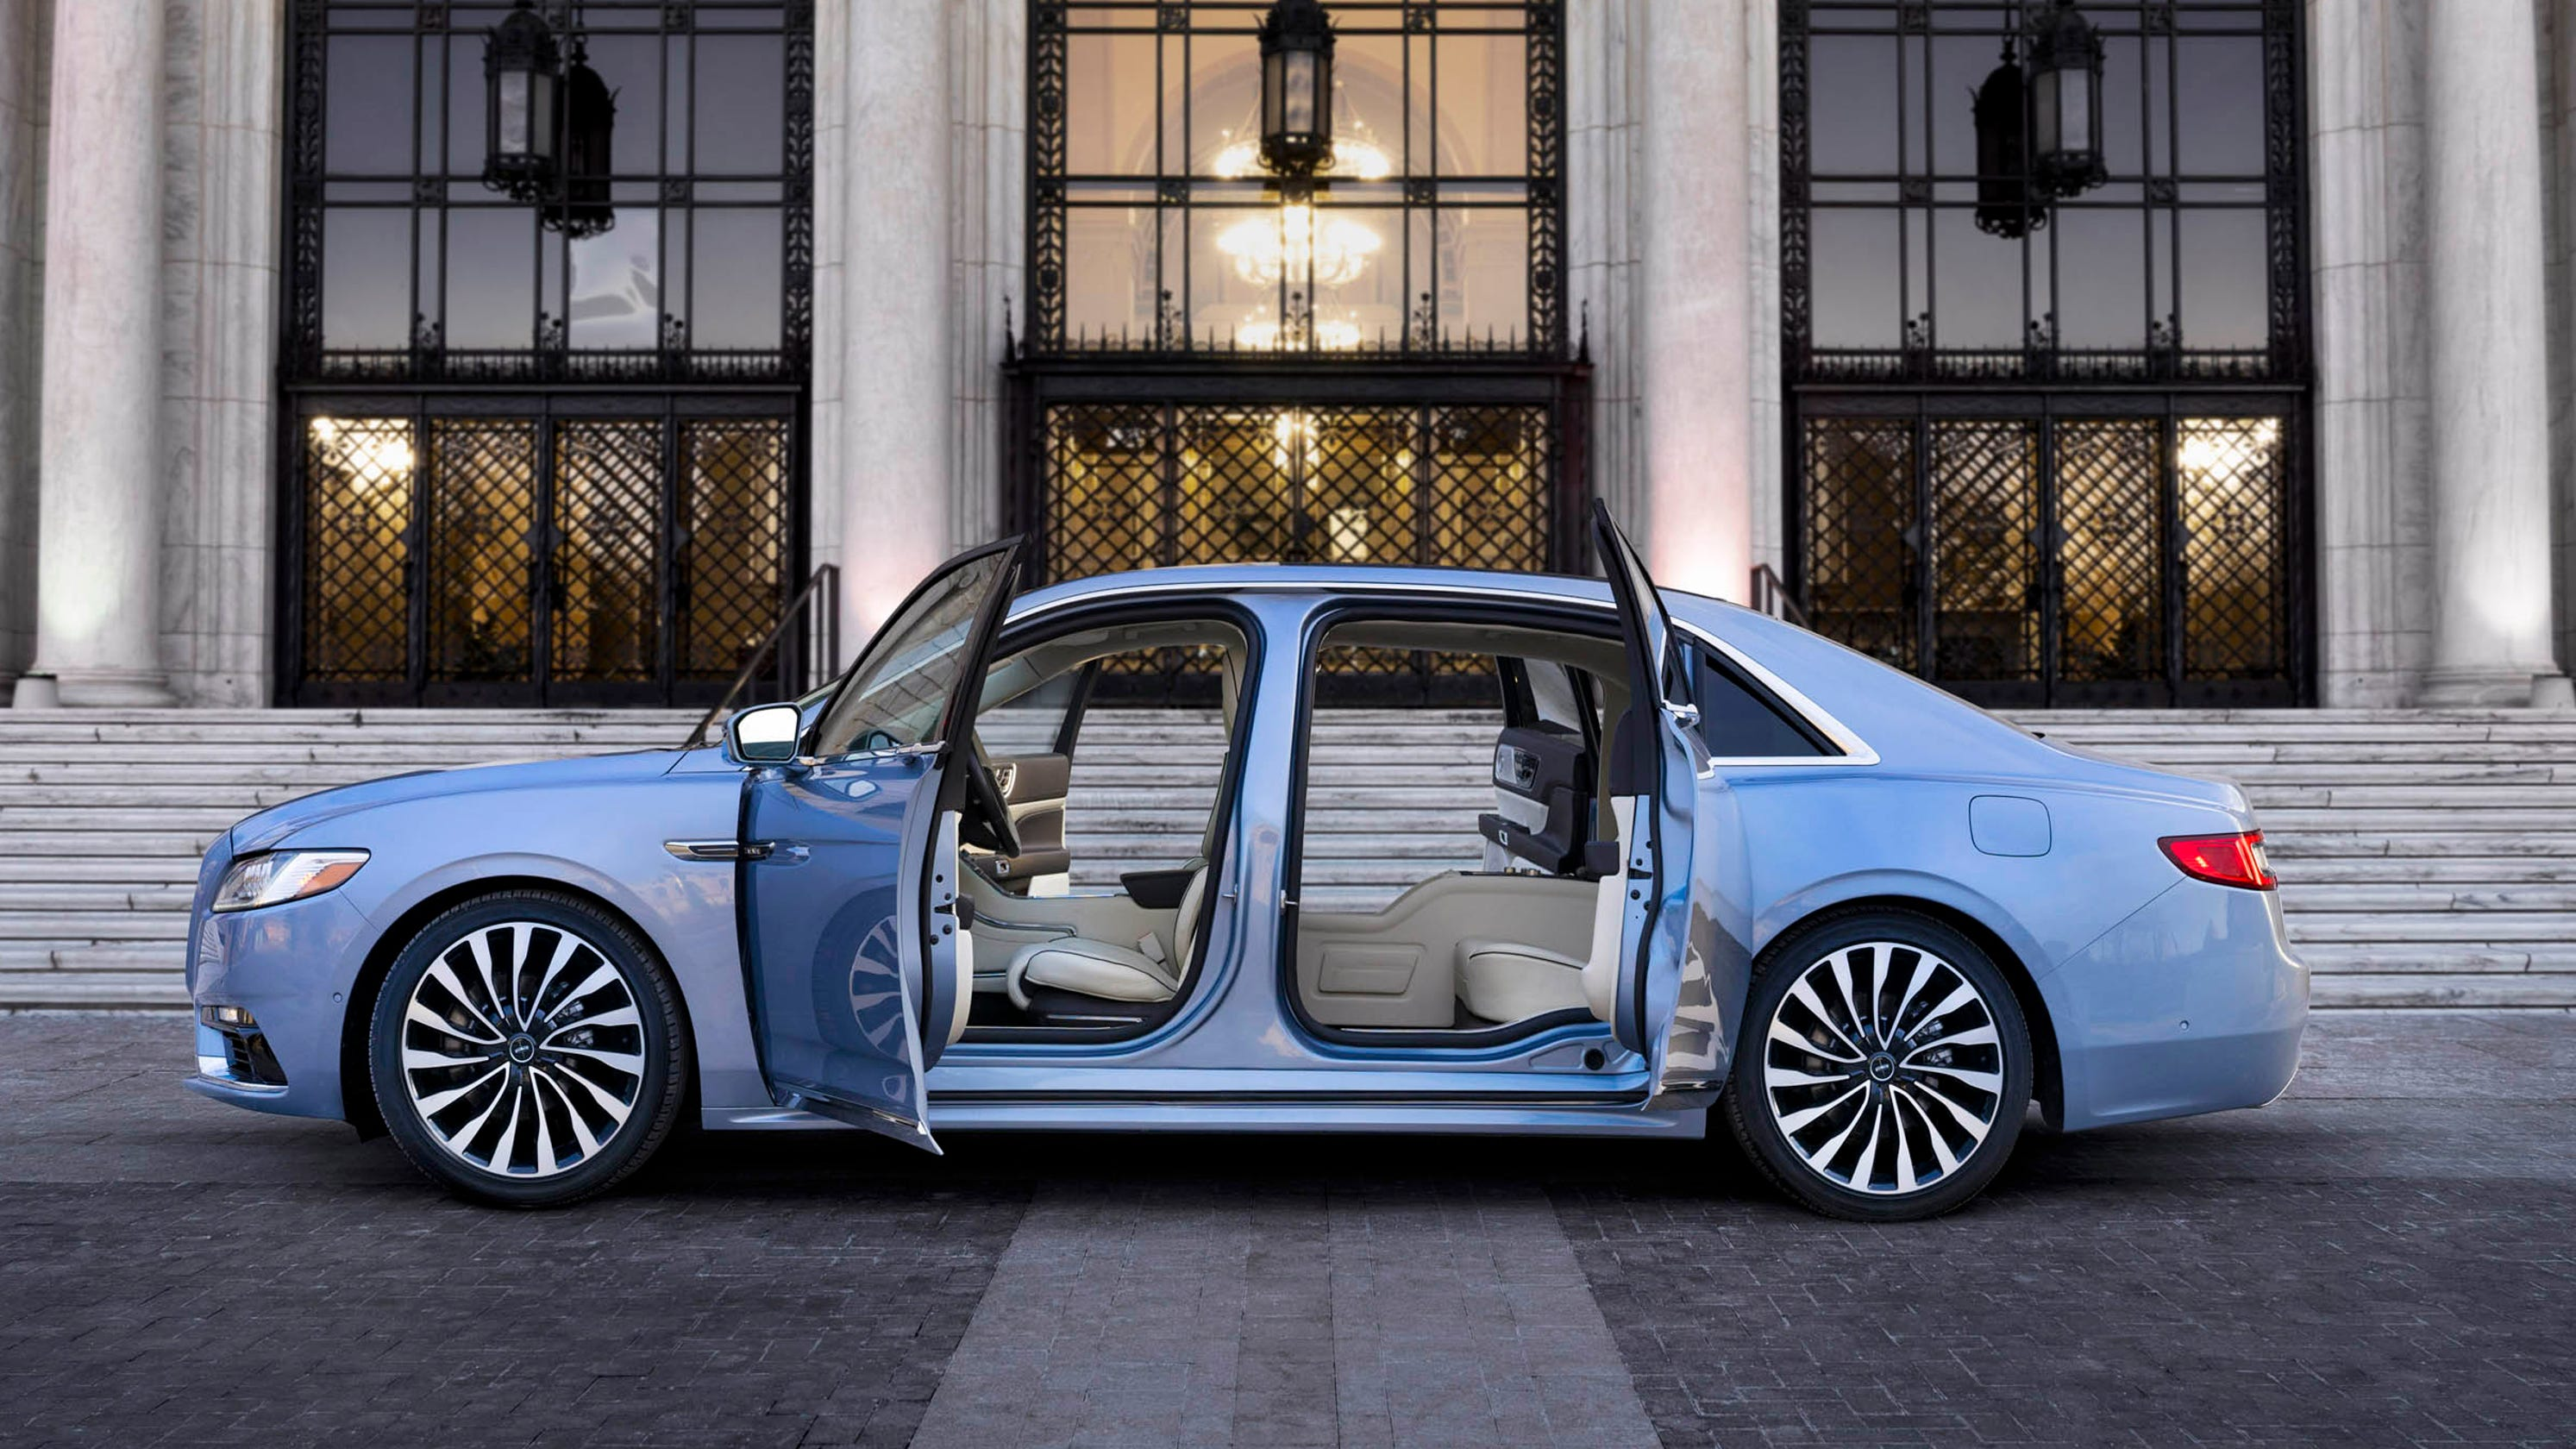 Lincoln Continental A Limited Edition Design Of 80 New Cars For 100 000 Each